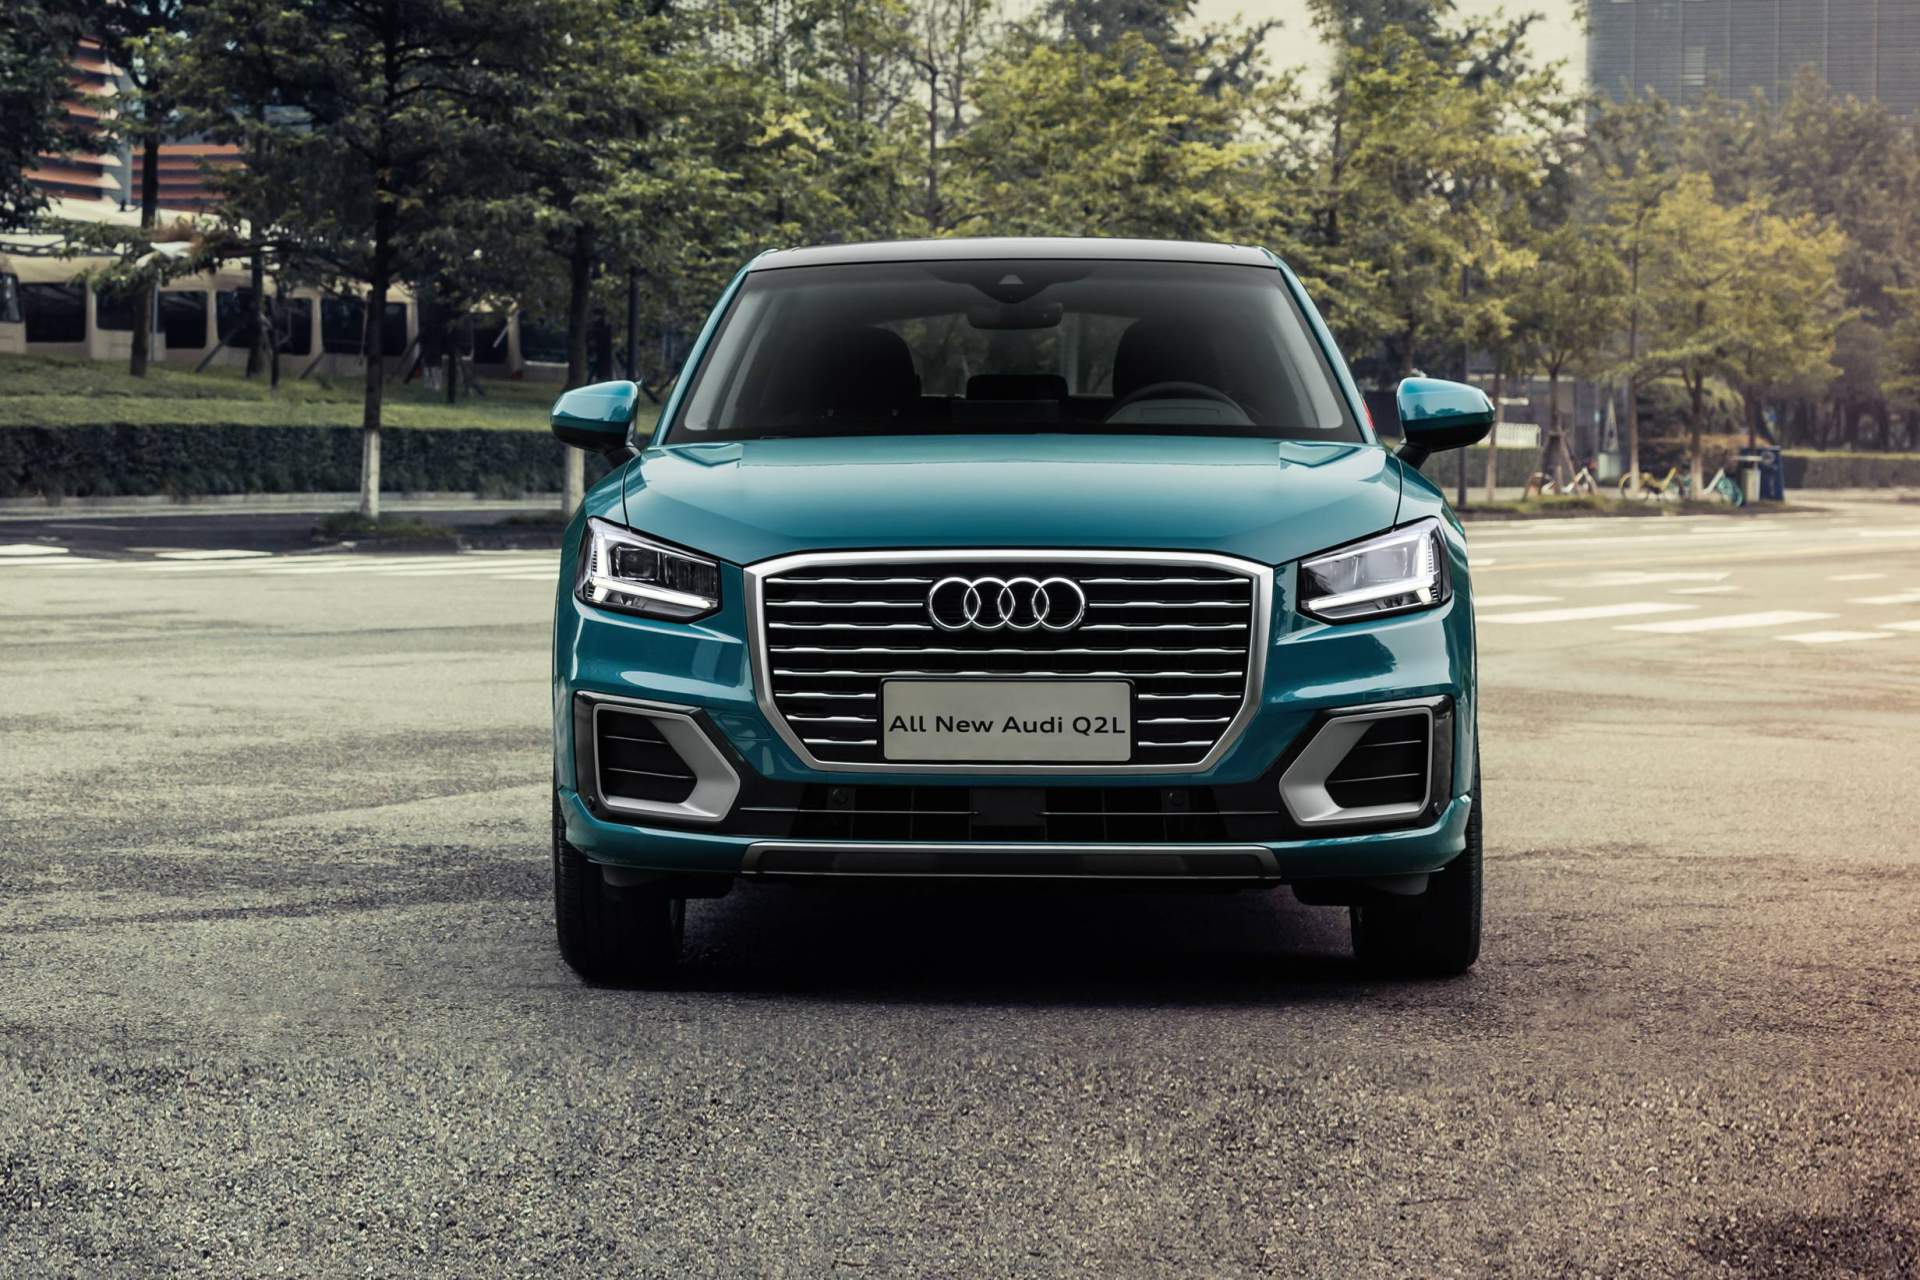 Audi Q2 L Goes Official In China - autoevolution